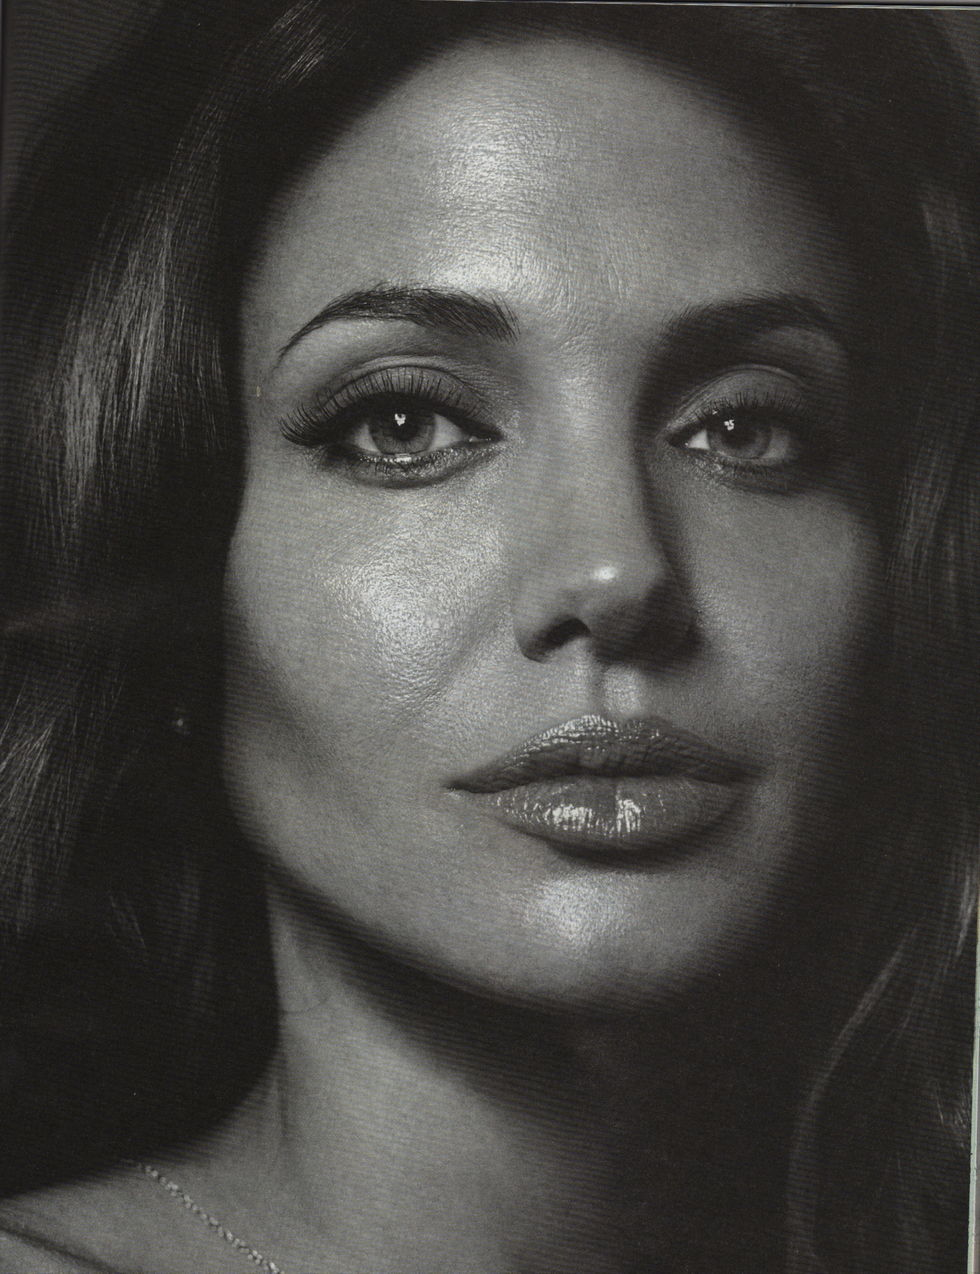 angelina-jolie-vanity-fair-magazine-italy-july-2008-01